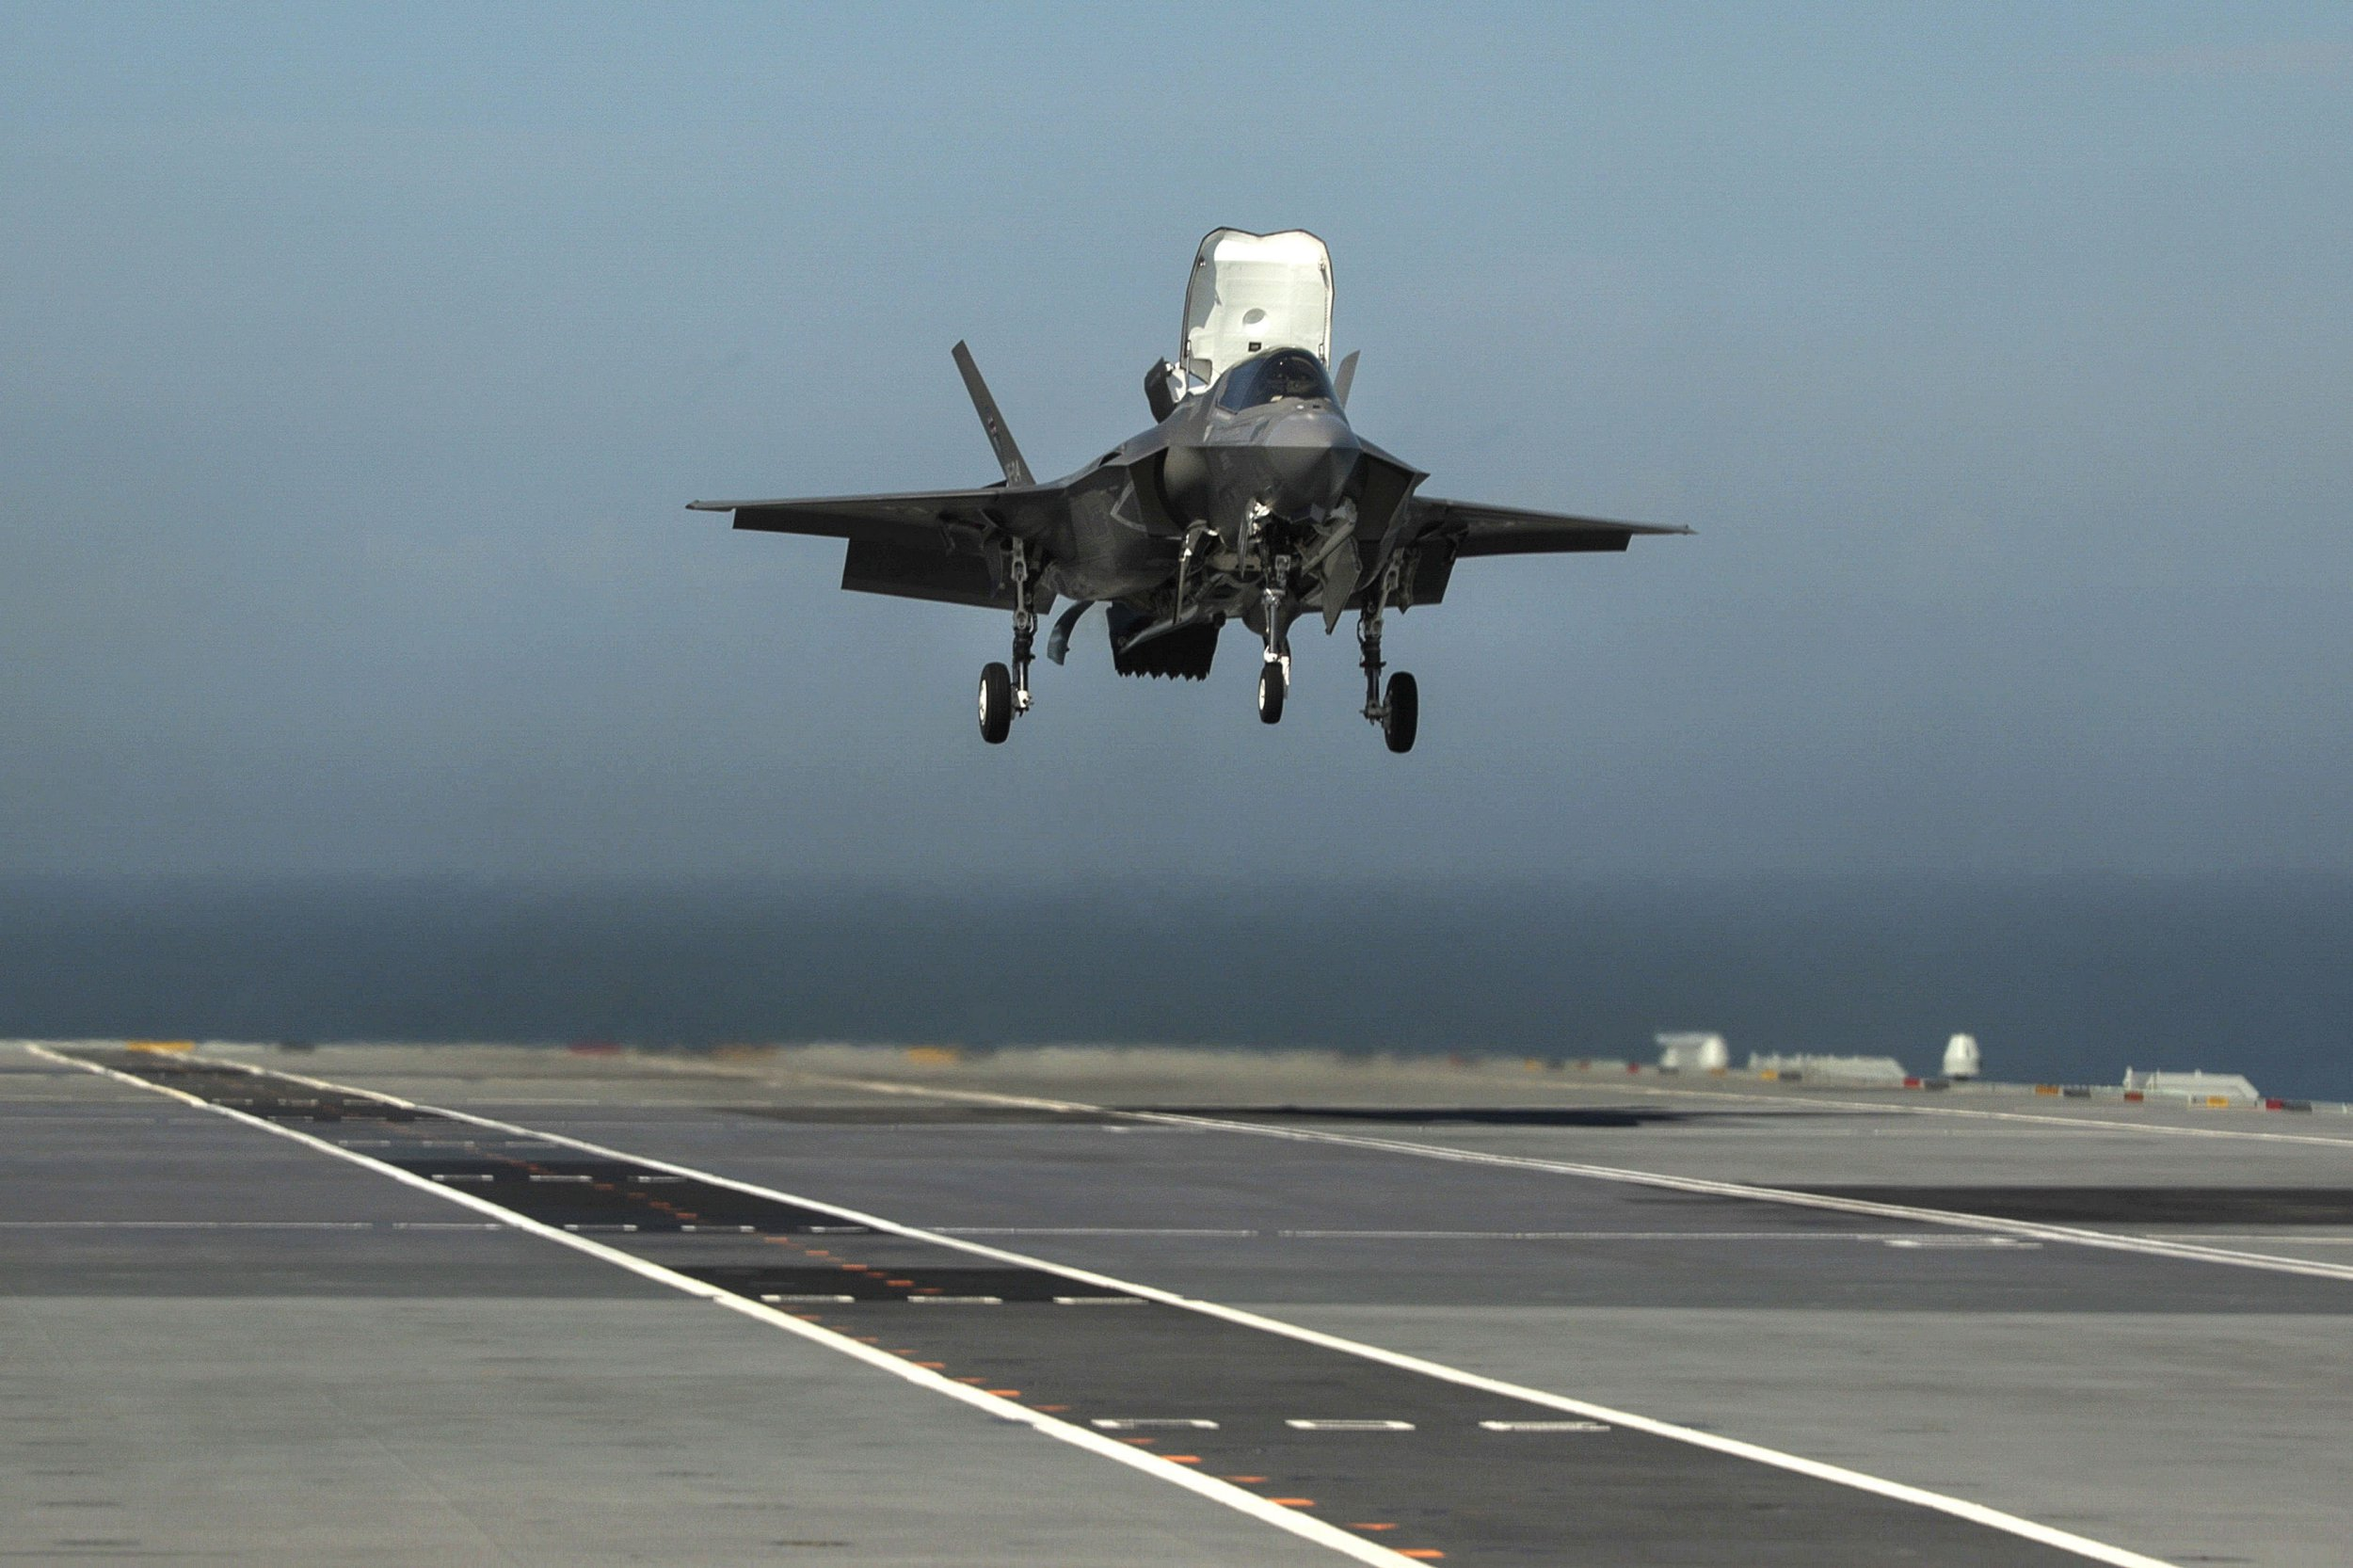 Embargoed to 2200 Friday September 28 Ministry of Defence handout photo dated 25/09/18 of Royal Navy Commander Nathan Gray making one of the first ever F-35B Lightning II jet vertical landings on the UK's new aircraft carrier HMS Queen Elizabeth. PRESS ASSOCIATION Photo. Issue date: Friday September 28, 2018. See PA story POLITICS Carrier. Photo credit should read: PO Arron Hoare/Royal Navy/MoD/Crown copyright/PA Wire NOTE TO EDITORS: This handout photo may only be used in for editorial reporting purposes for the contemporaneous illustration of events, things or the people in the image or facts mentioned in the caption. Reuse of the picture may require further permission from the copyright holder.